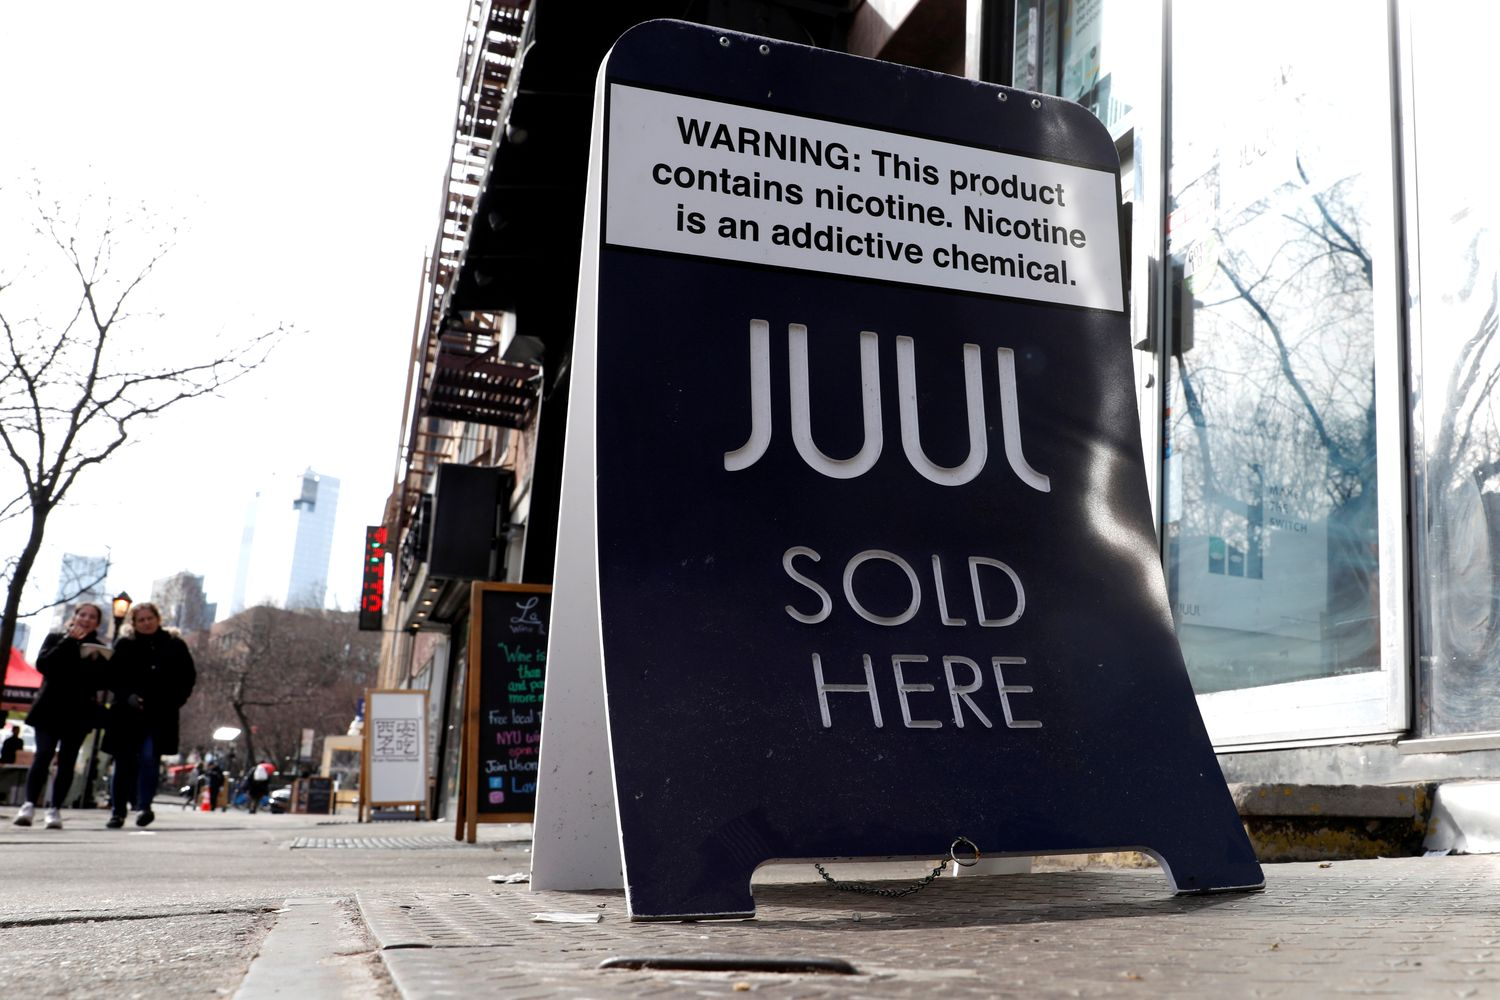 Juul Labs reportedly facing scrutiny for allegedly targeting minors